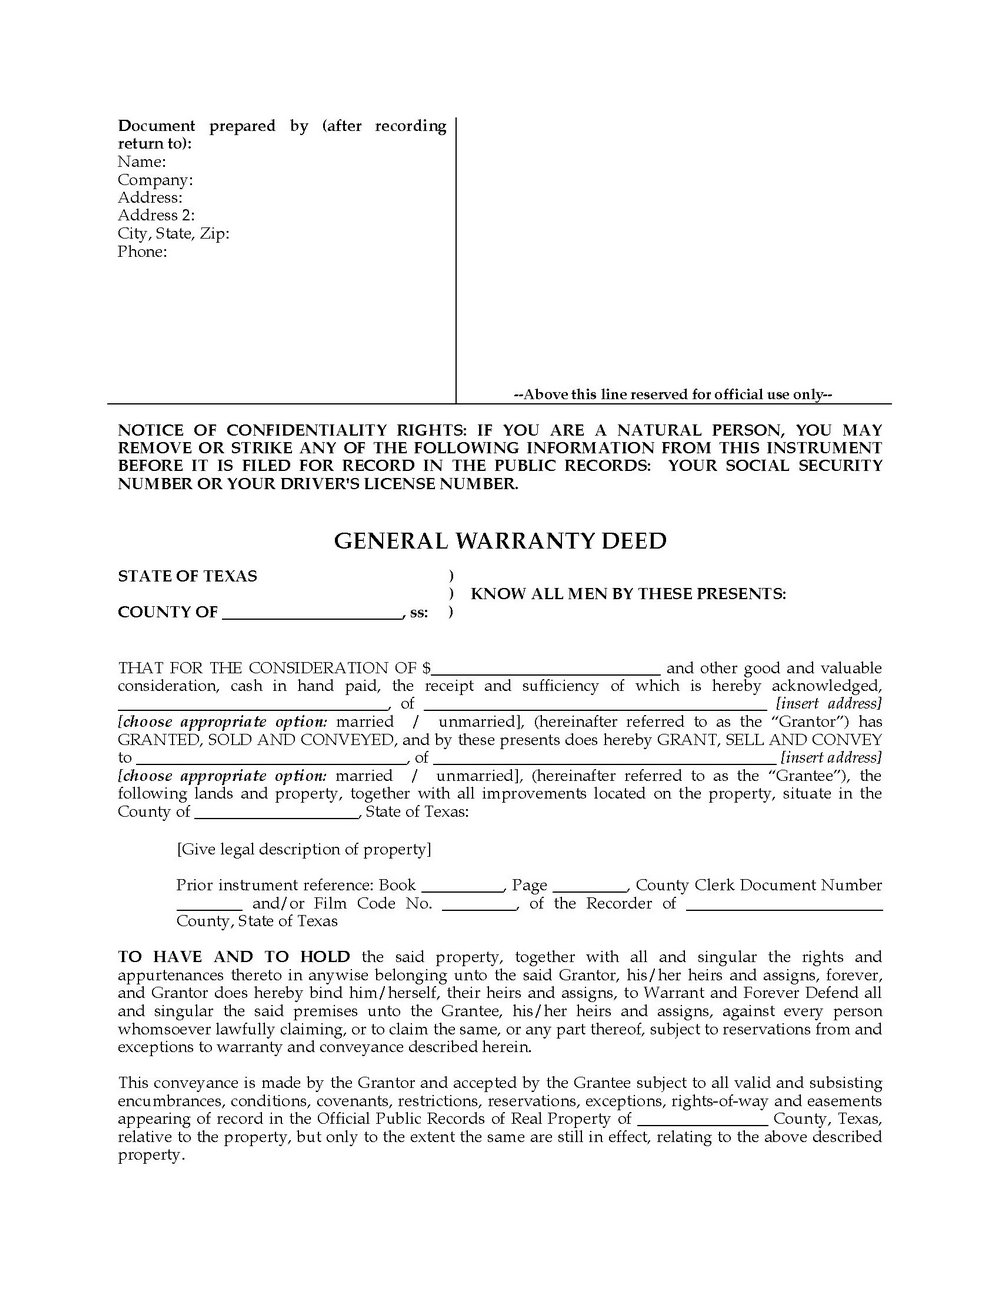 Warranty Deed Form Pdf